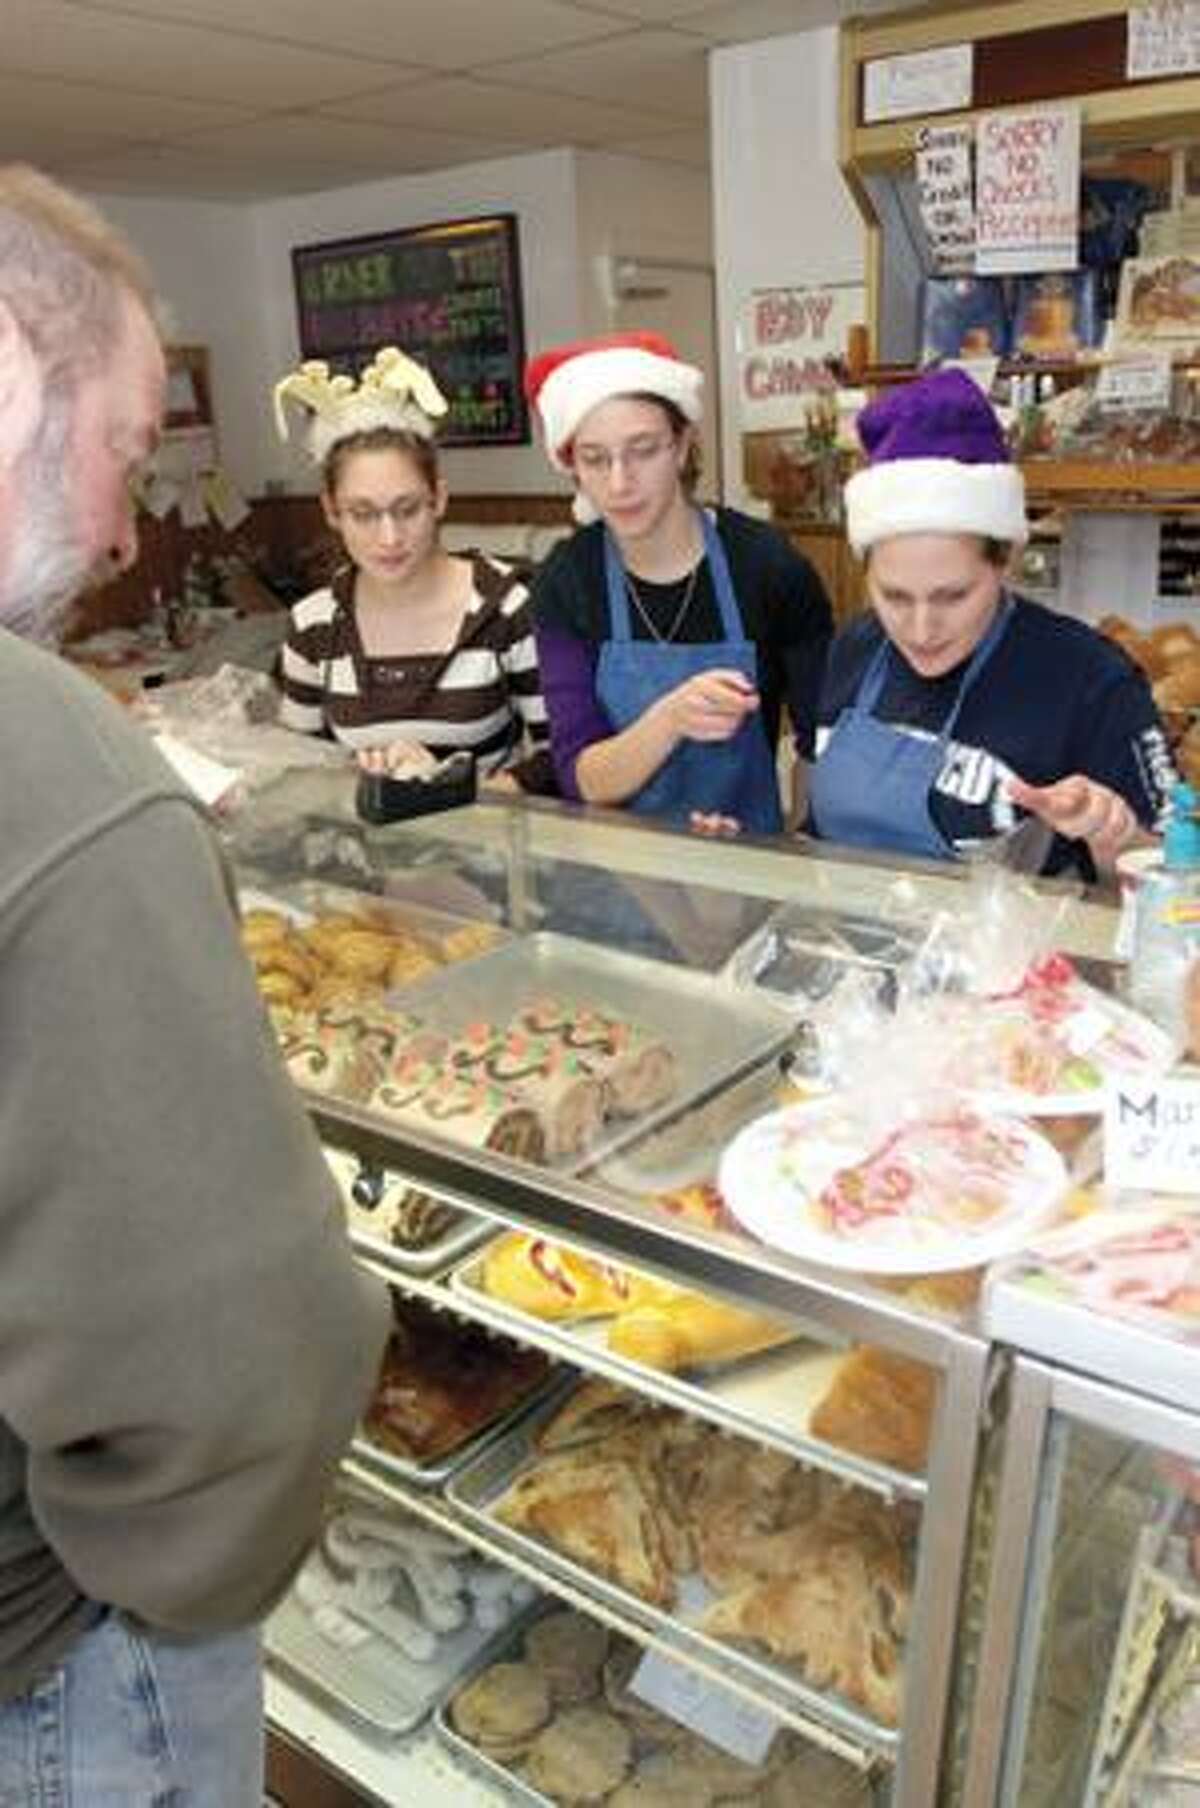 SONJA ZINKE/Register CitizenRebecca Melaragno, Erica Melaragno and Christina Tartaglino help a customer pick out a tasty delight from Lombardi's Bakery case in Torrington Thursday. Christmas Eve is typically the busiest day of the year for the bakery. Purchase a glossy print of this photo and more at www.registercitizen.com